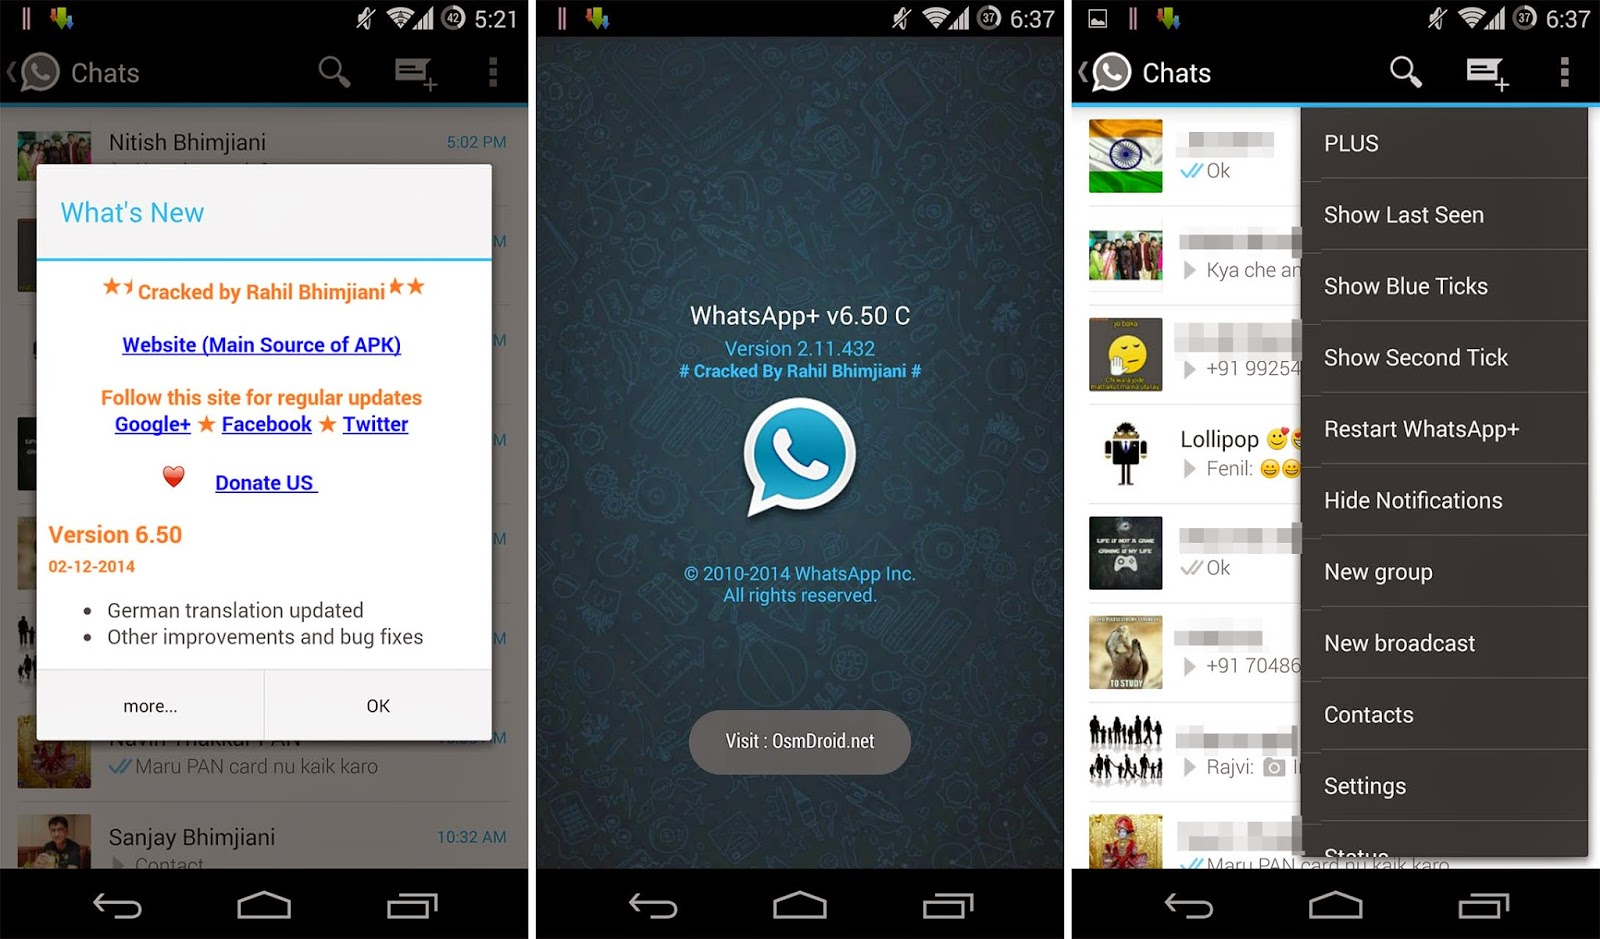 Apk Fly: Whatsapp Plus 6 50 Cracked Rahil Hide Last Seen Online